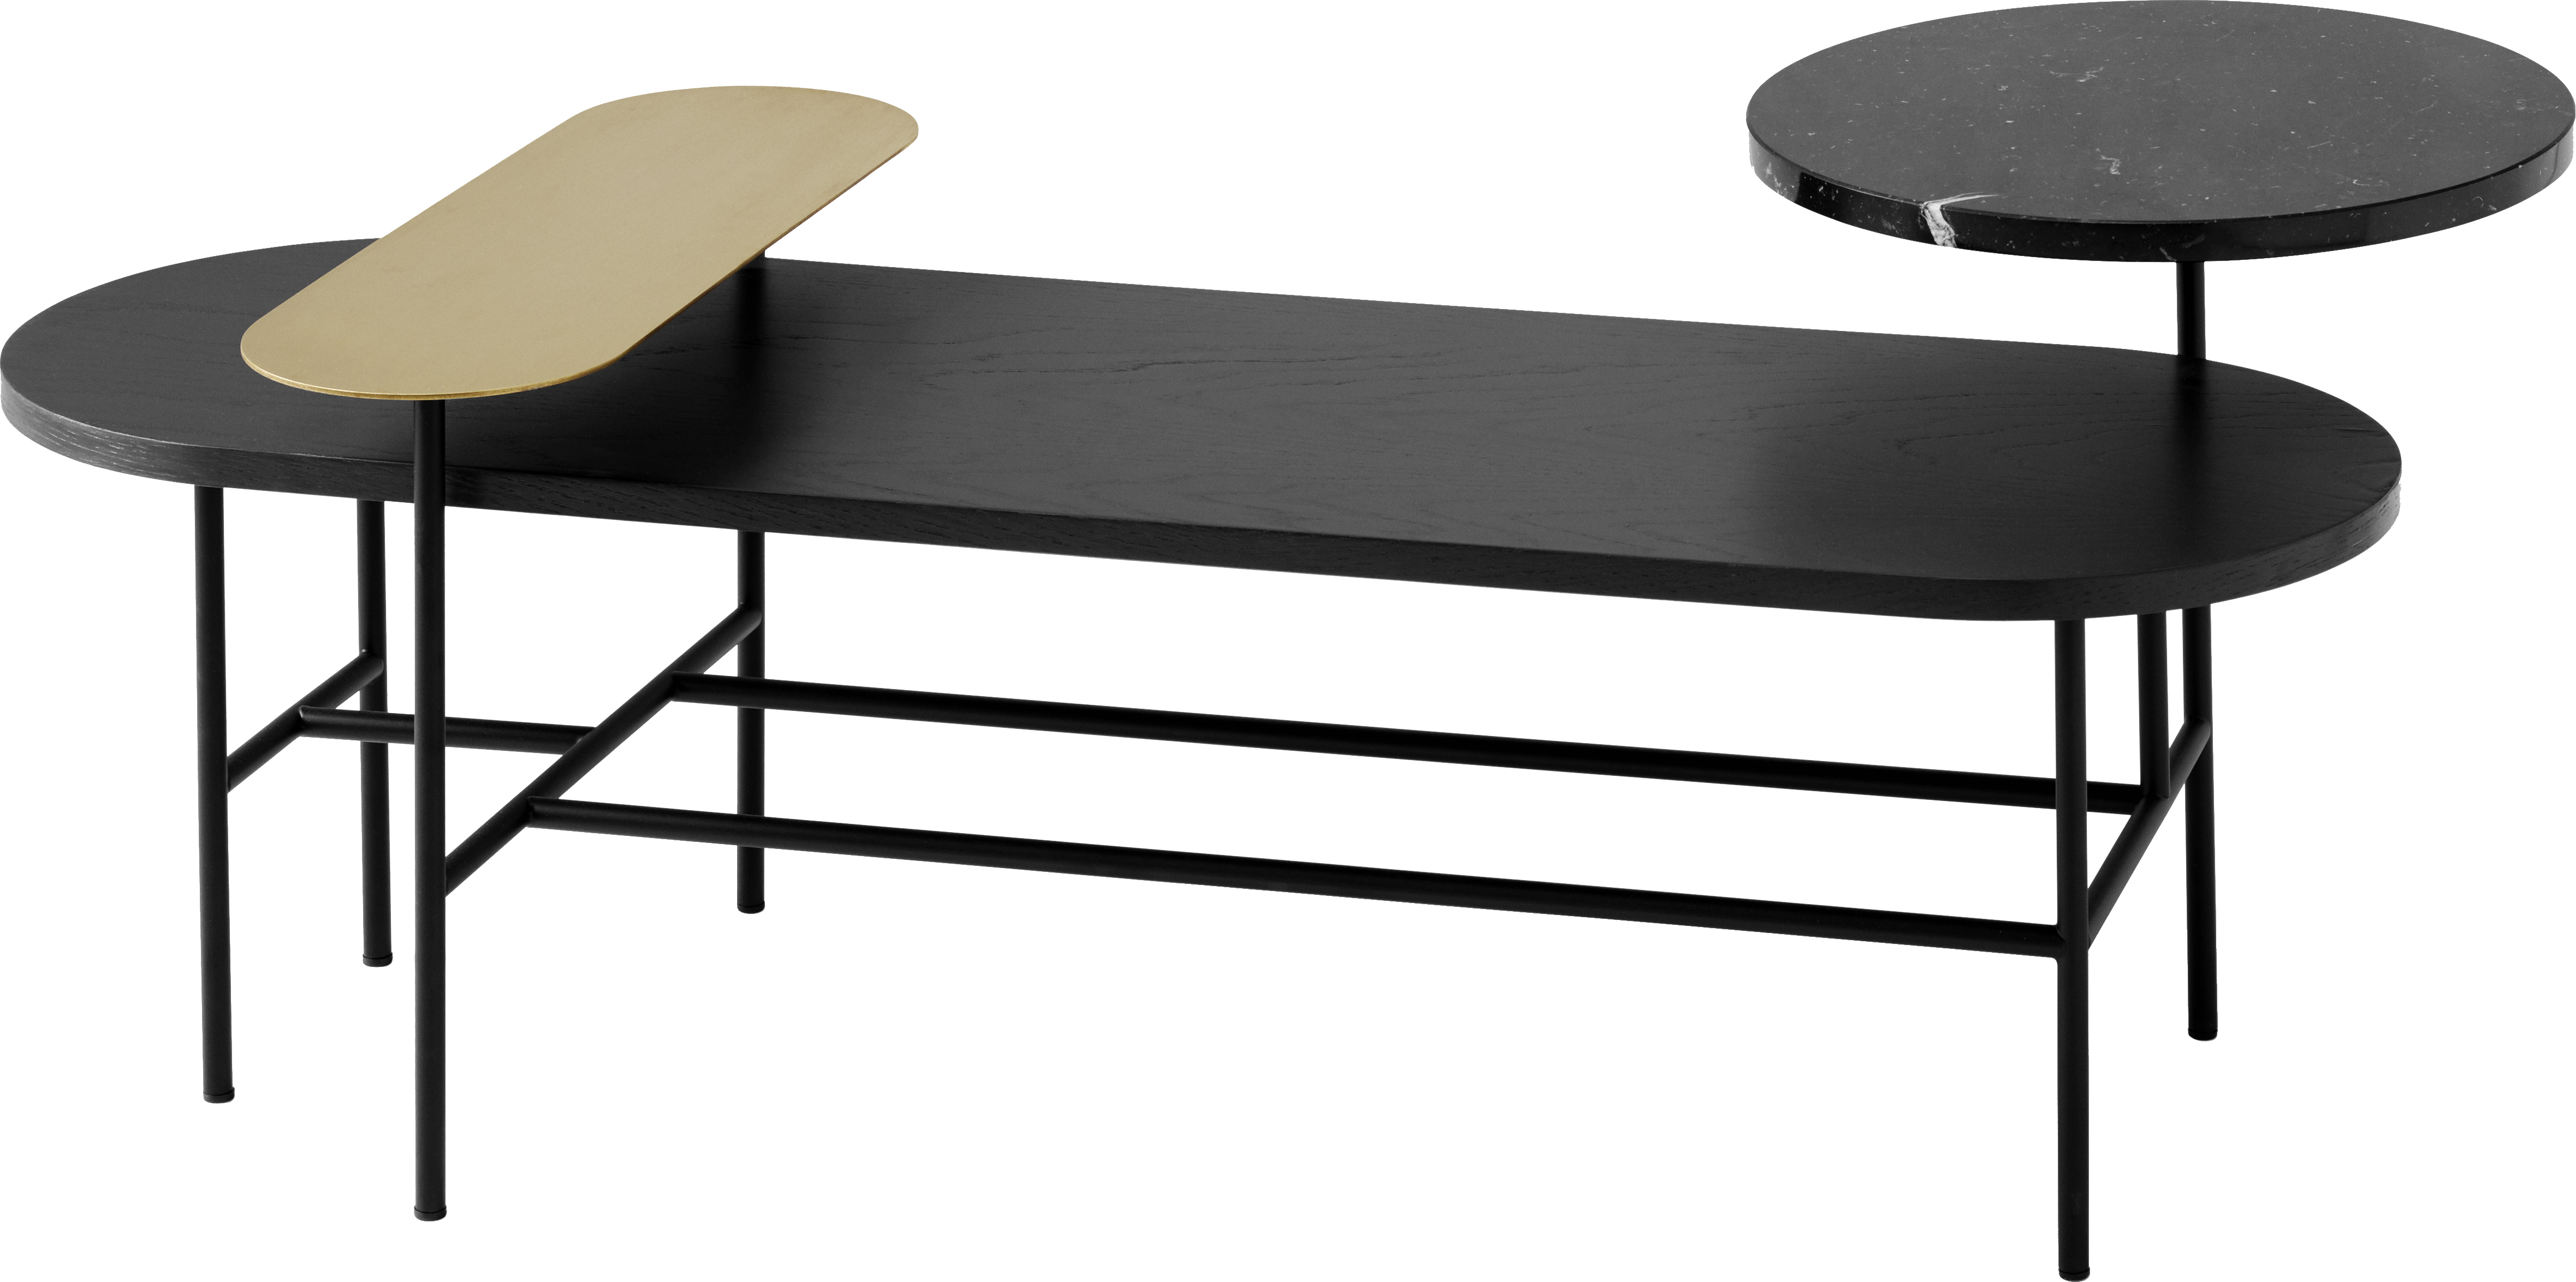 long sofa bar table small sectional for sunroom modern tables from contemporary designers at haute living